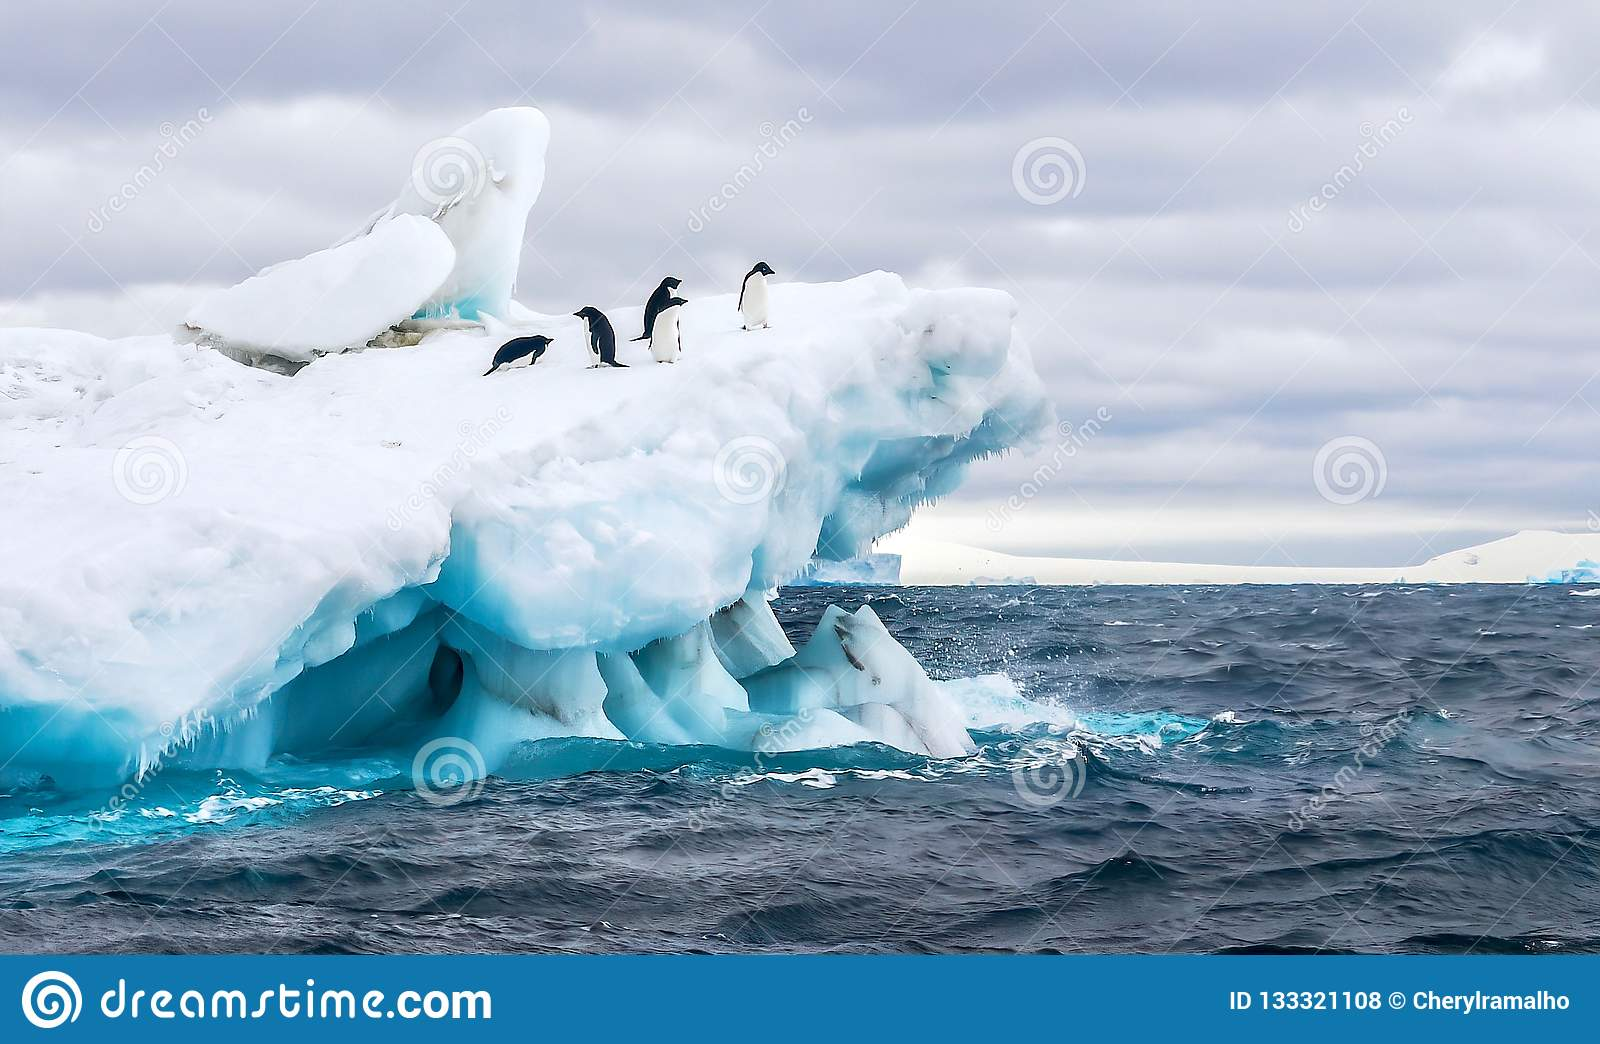 Adelie penguins on a beautiful iceberg in Antarctica.